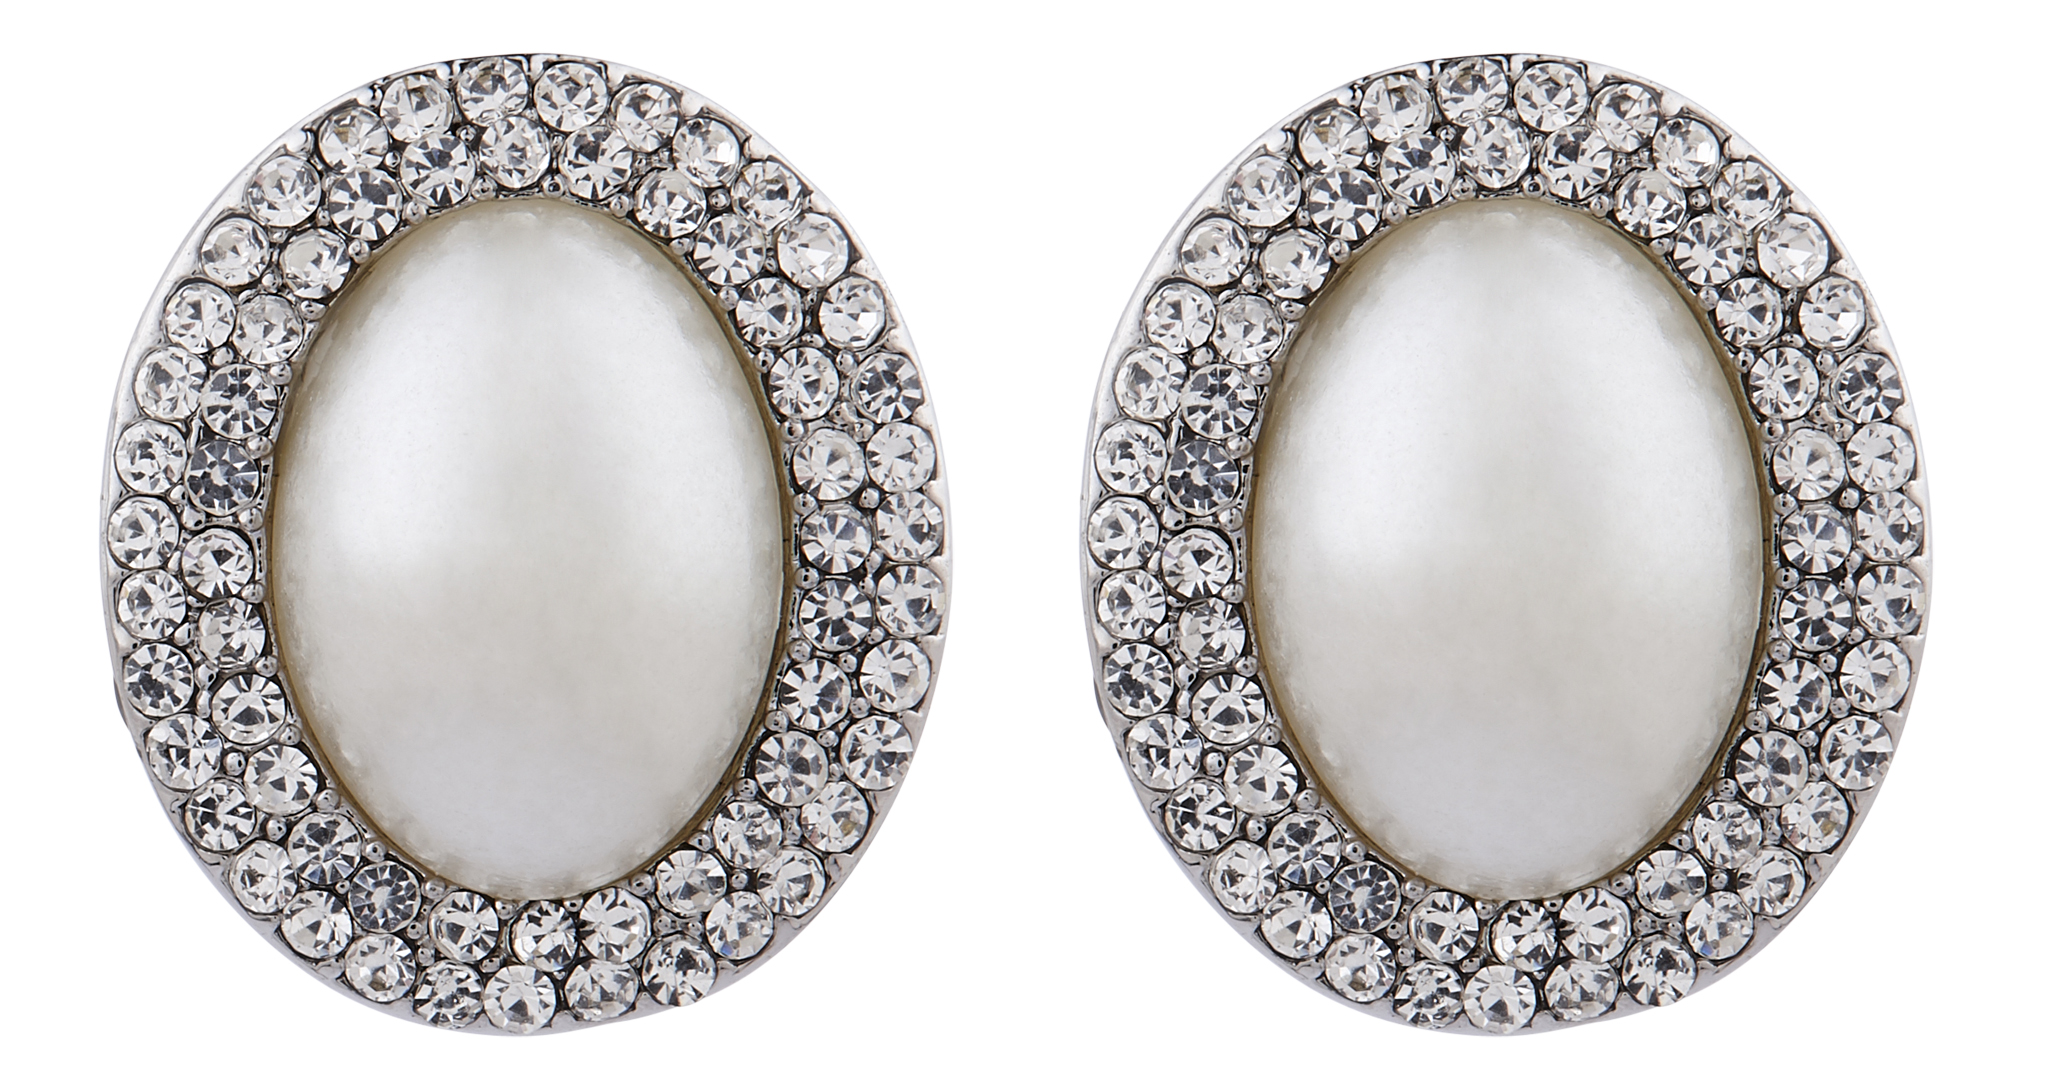 Clip On Earrings - Bertha S - silver vintage style earring with an oval pearl and crystals